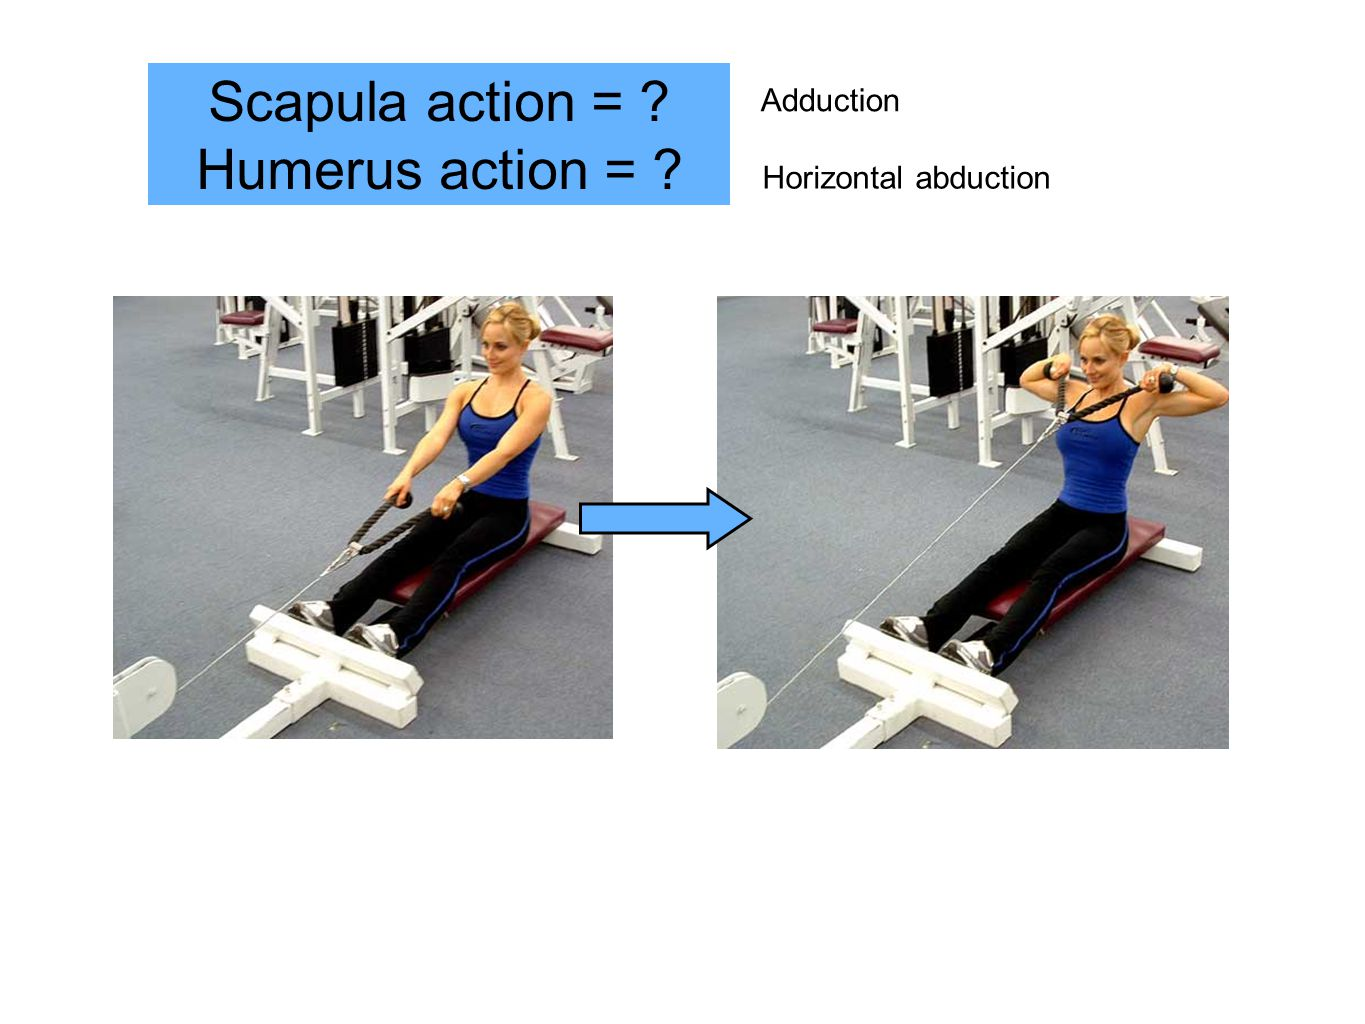 Scapula action = Humerus action = Adduction Horizontal abduction